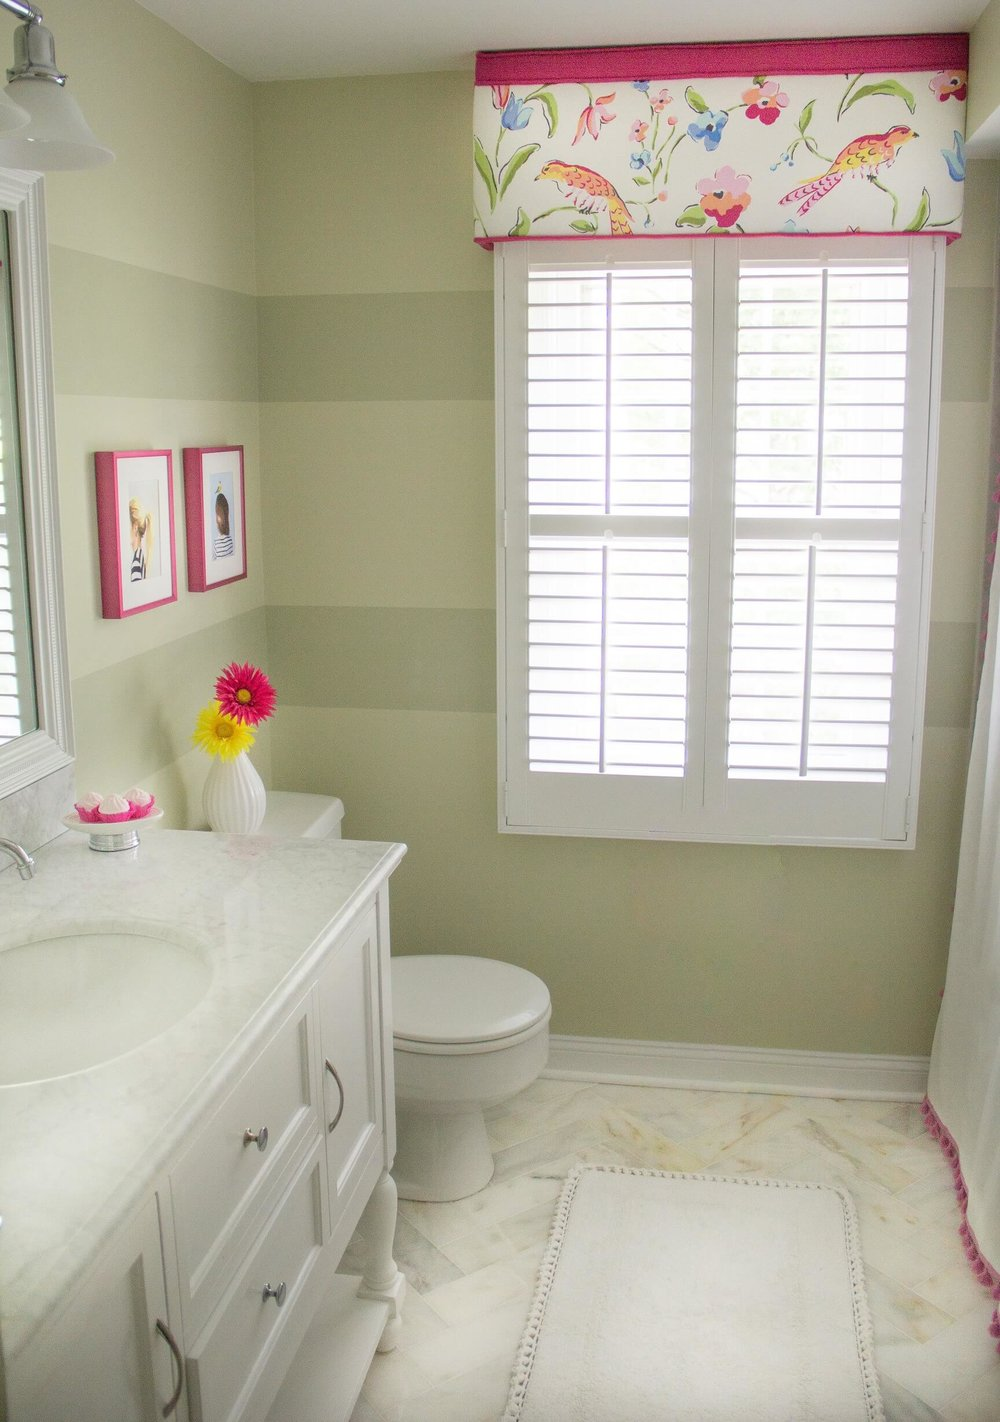 children-kids-bathroom-interior-design-remodel-renovate-virginia-7.jpg